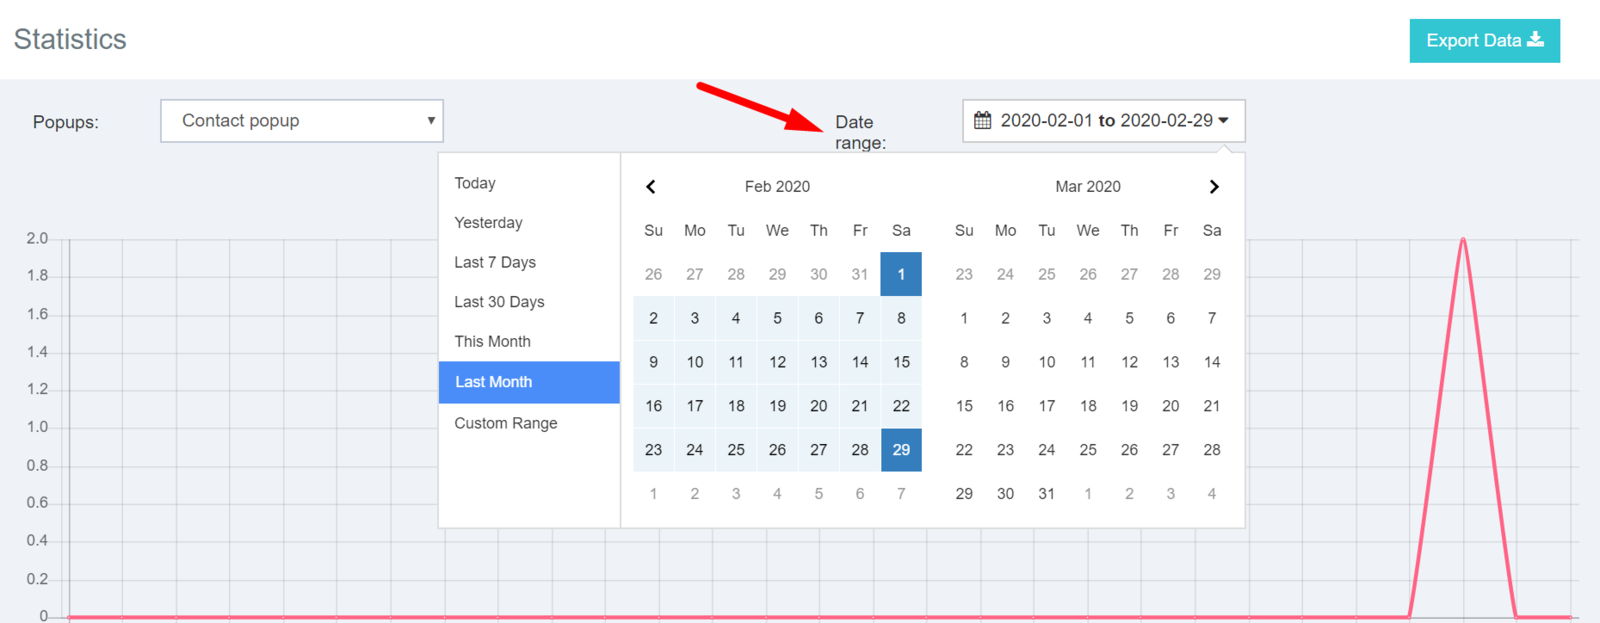 Date range for tracking the popup statistics